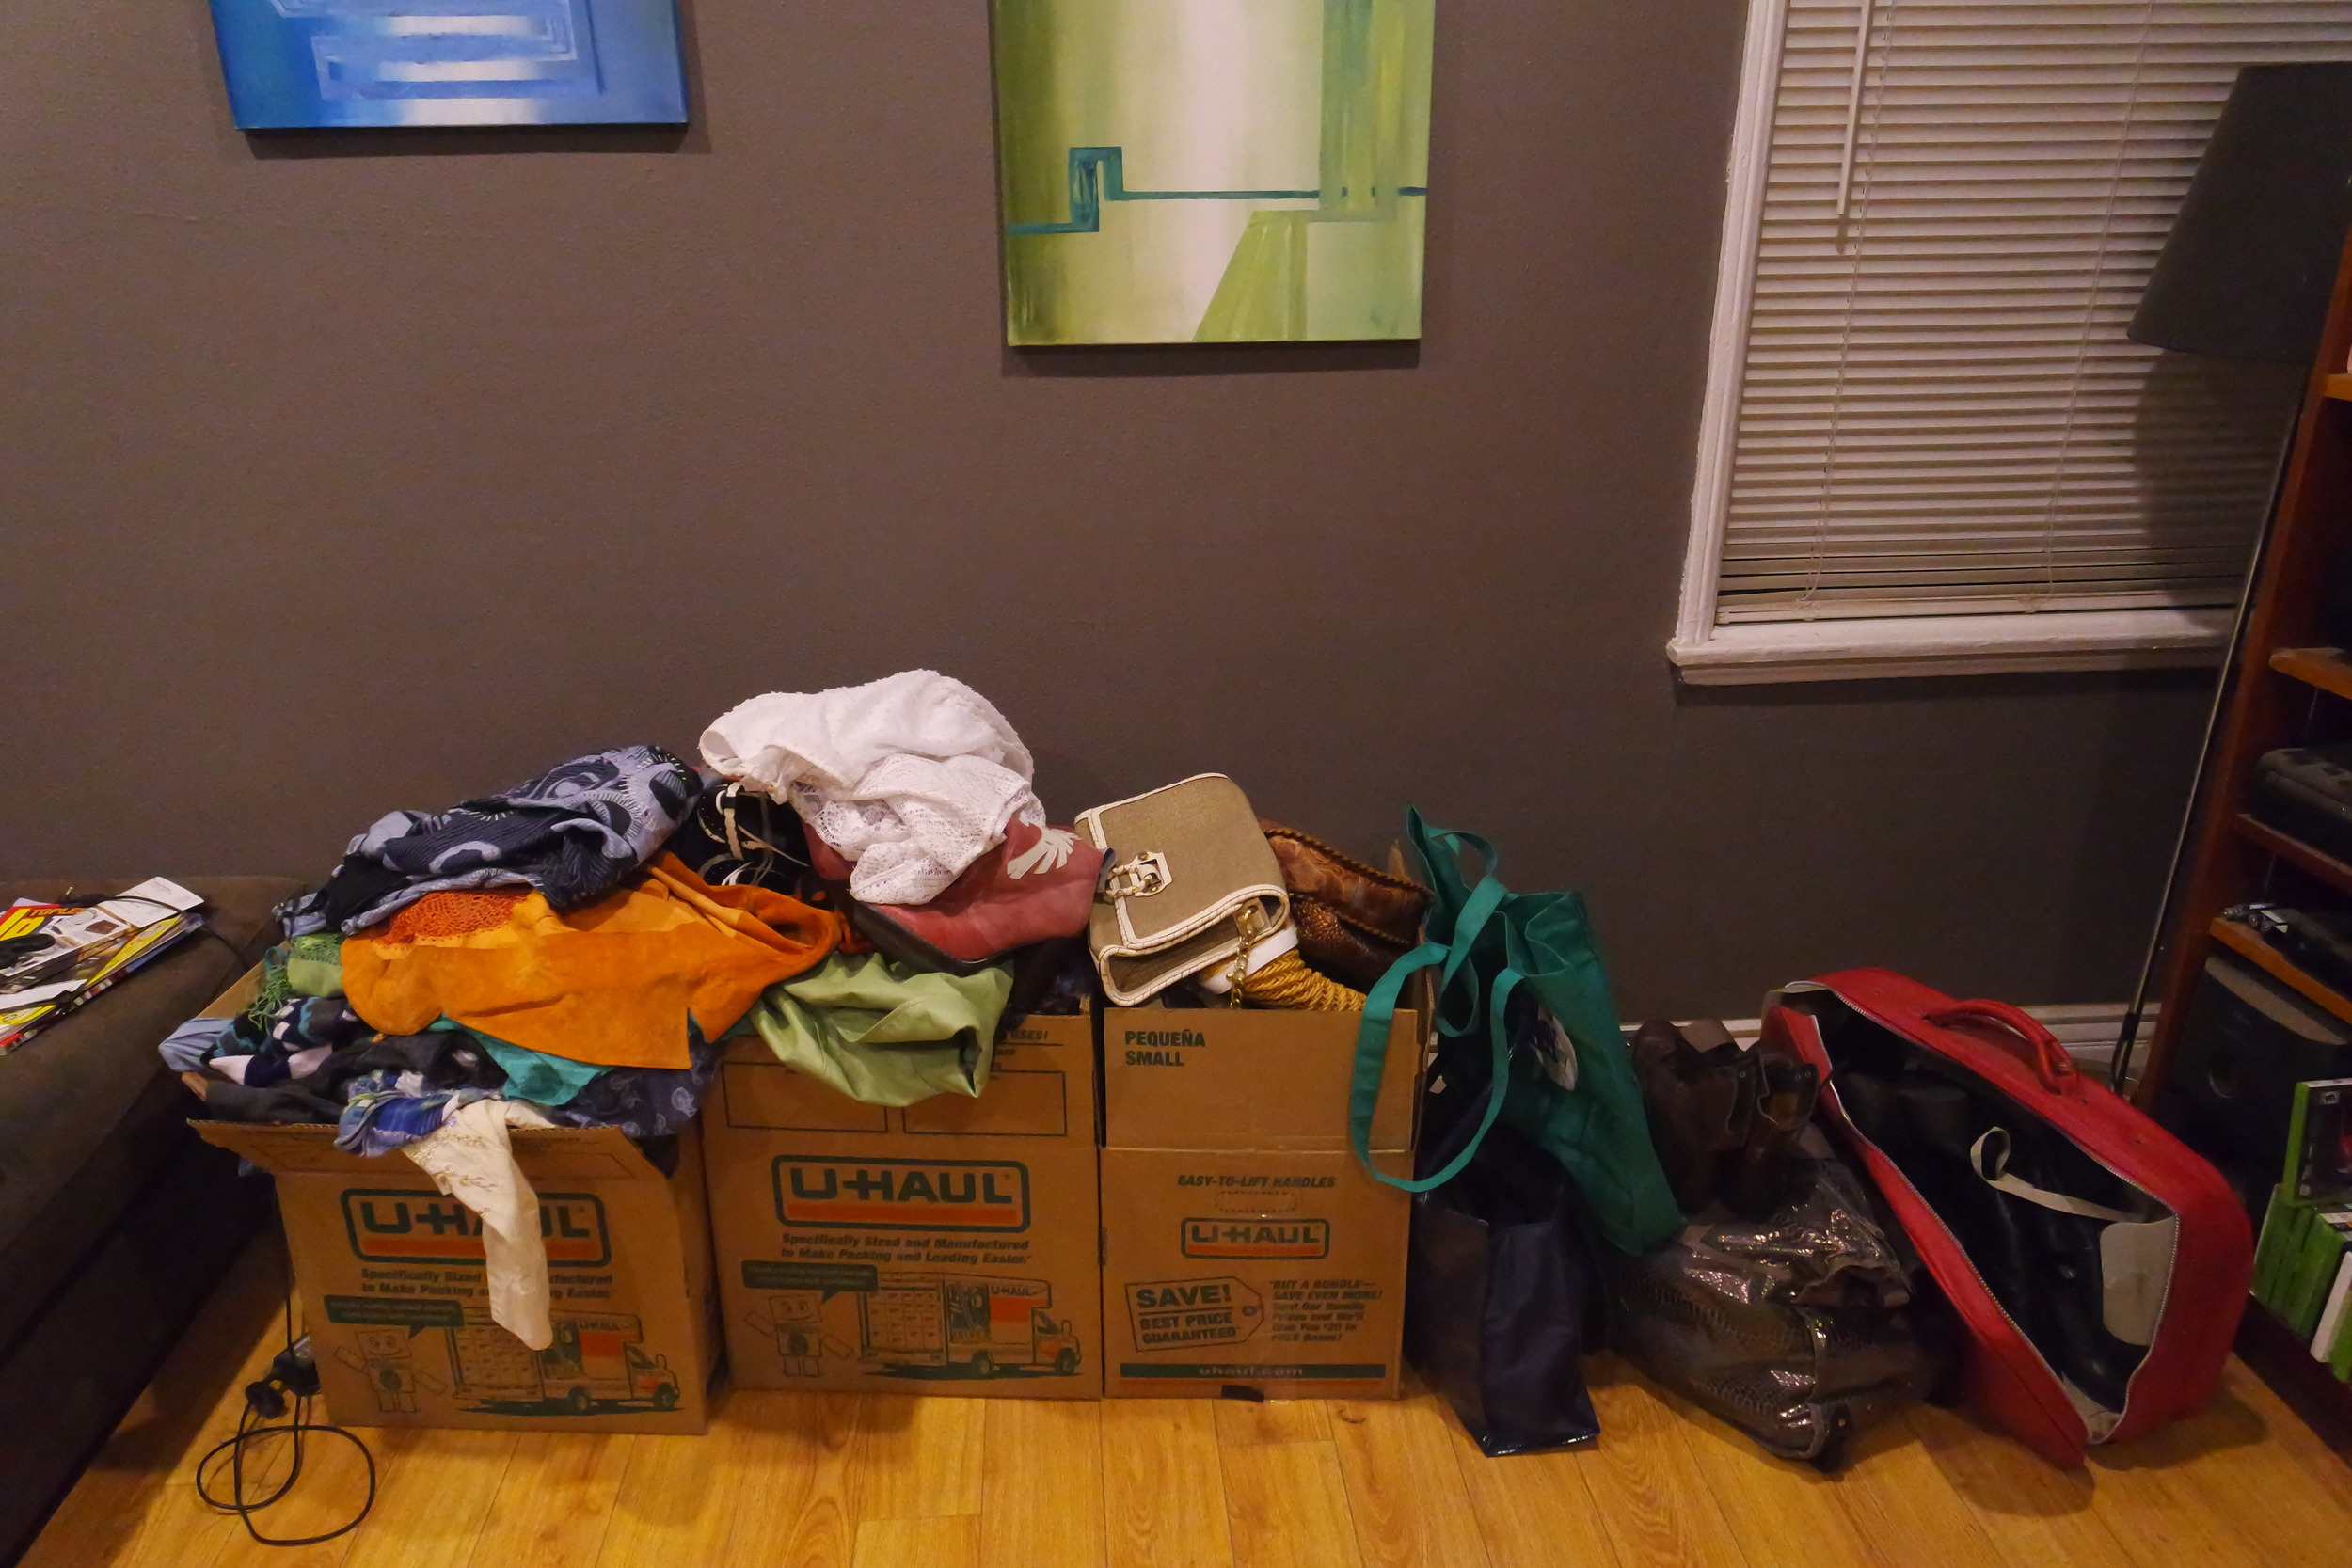 Purged items from the closet clean out - later we added two more large-sized bags as well.